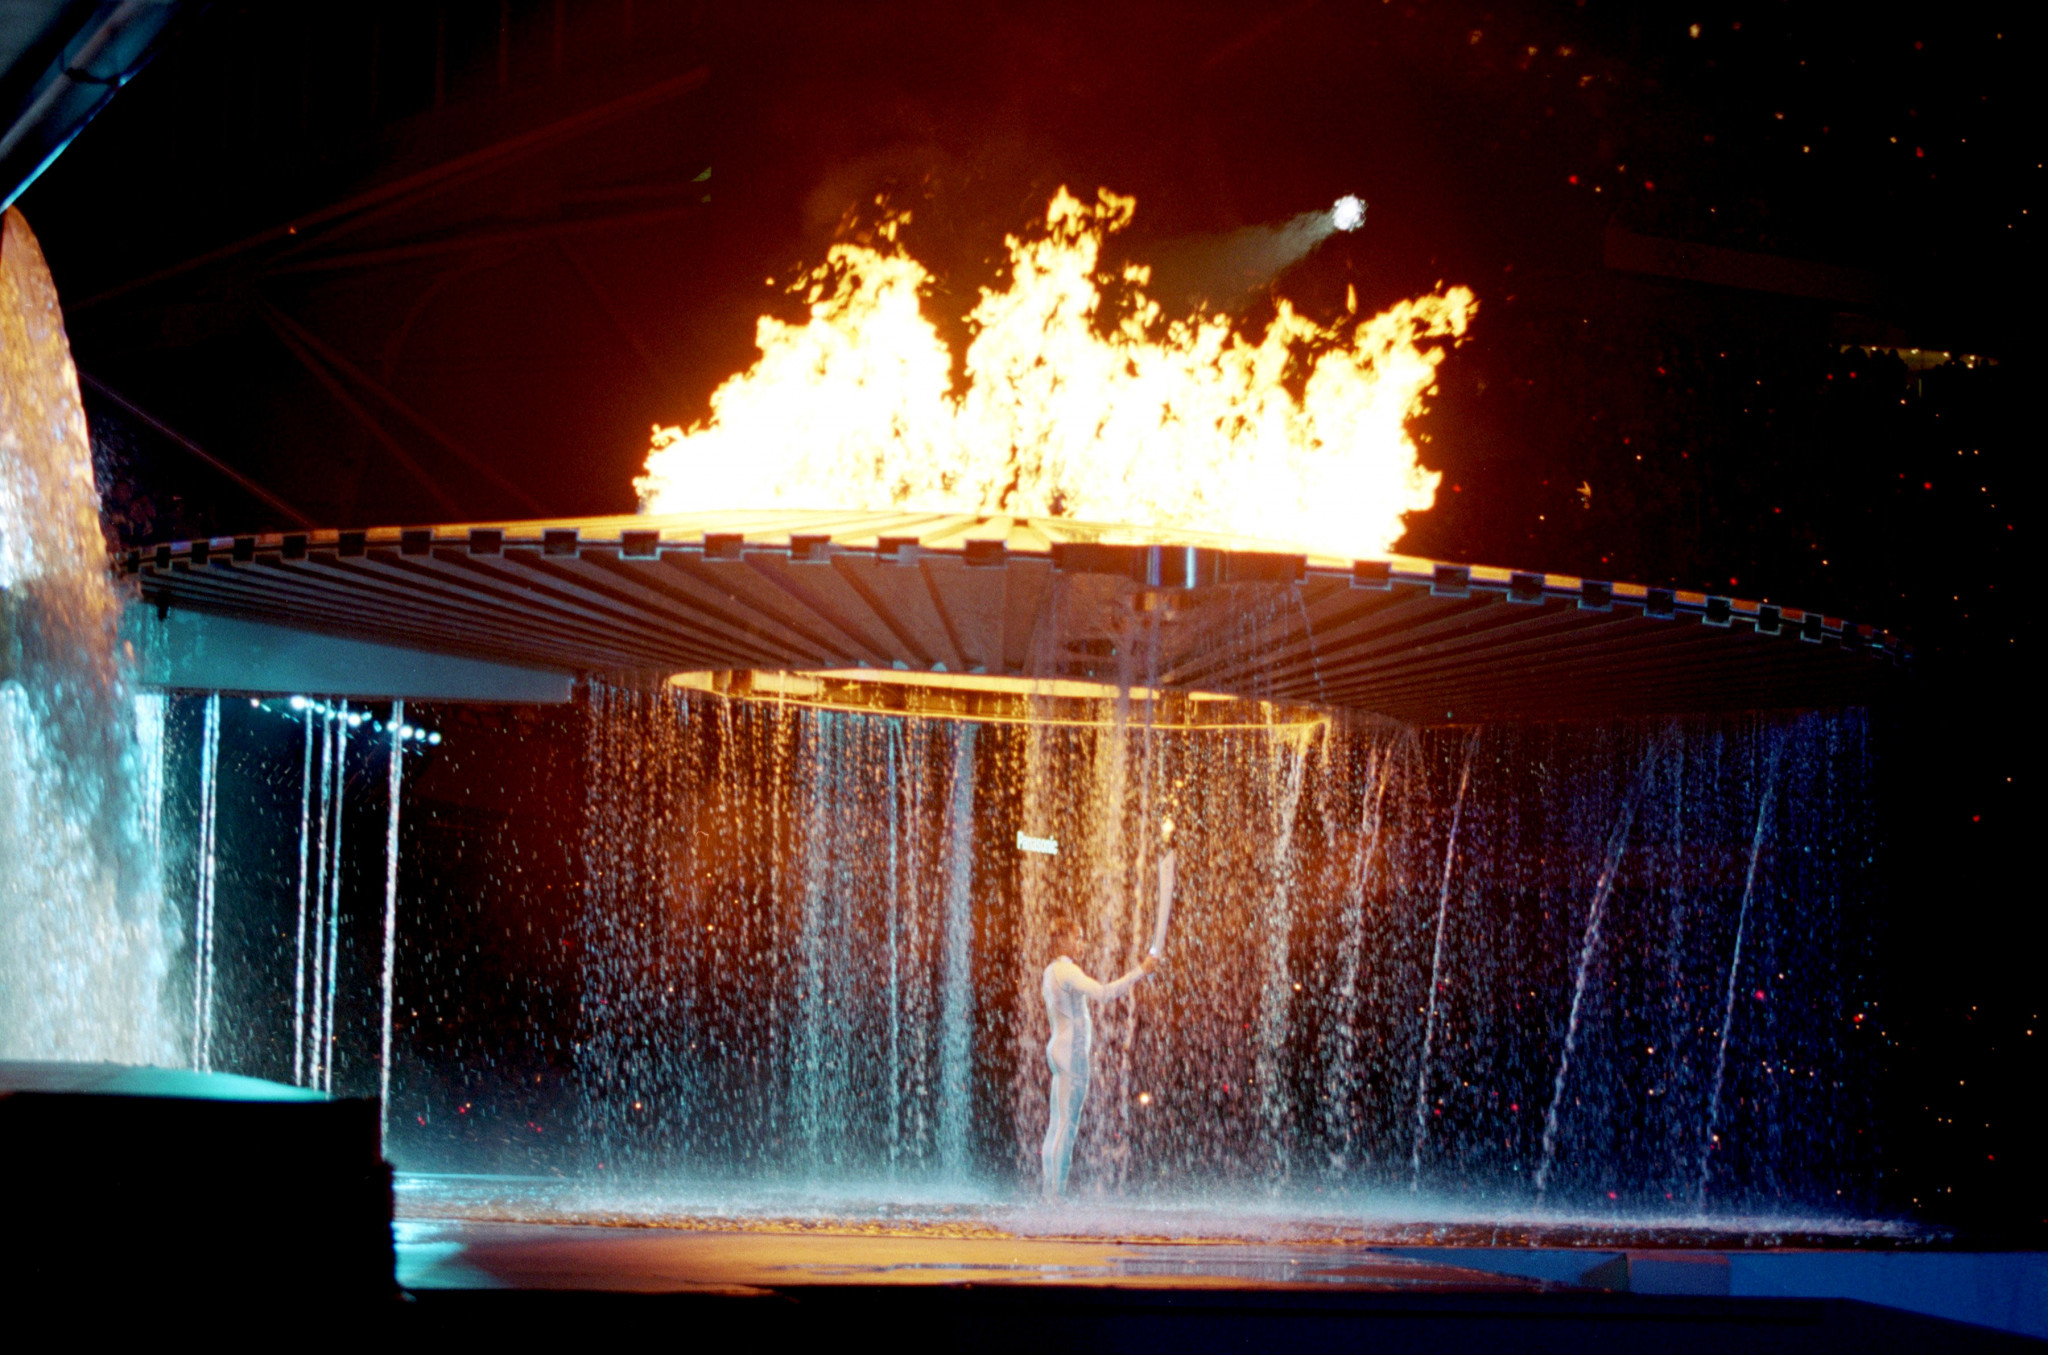 Cathy Freeman of Australia lights the Olympic Flame during the Opening Ceremony of the Sydney 2000 Olympic Games at the Olympic Stadium in Homebush Bay, Sydney, Australia.©Getty Images